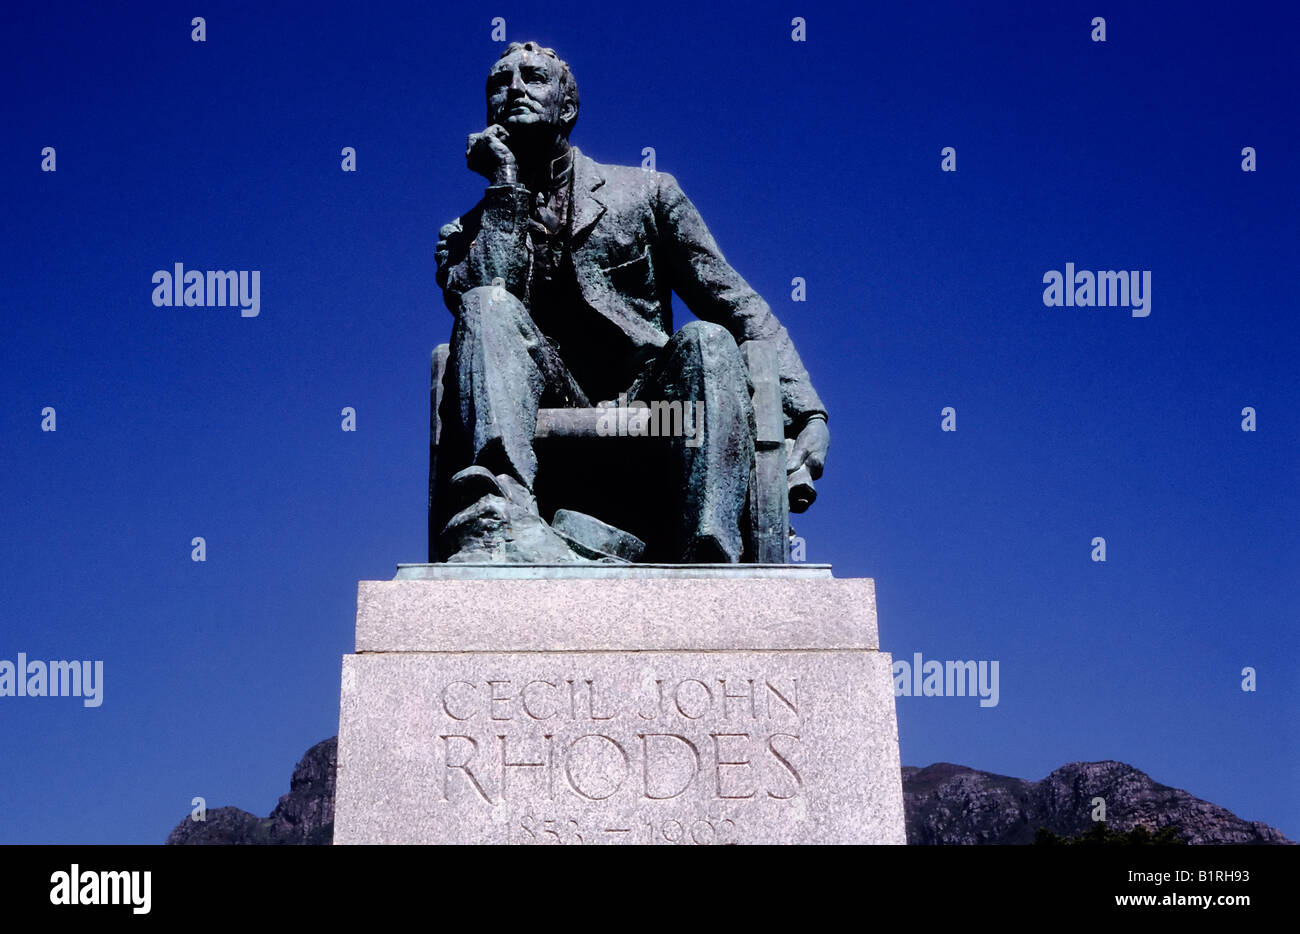 Memorial of Cecil Rhodes in front of the University of Cape Town, UCT, South Africa, Africa - Stock Image